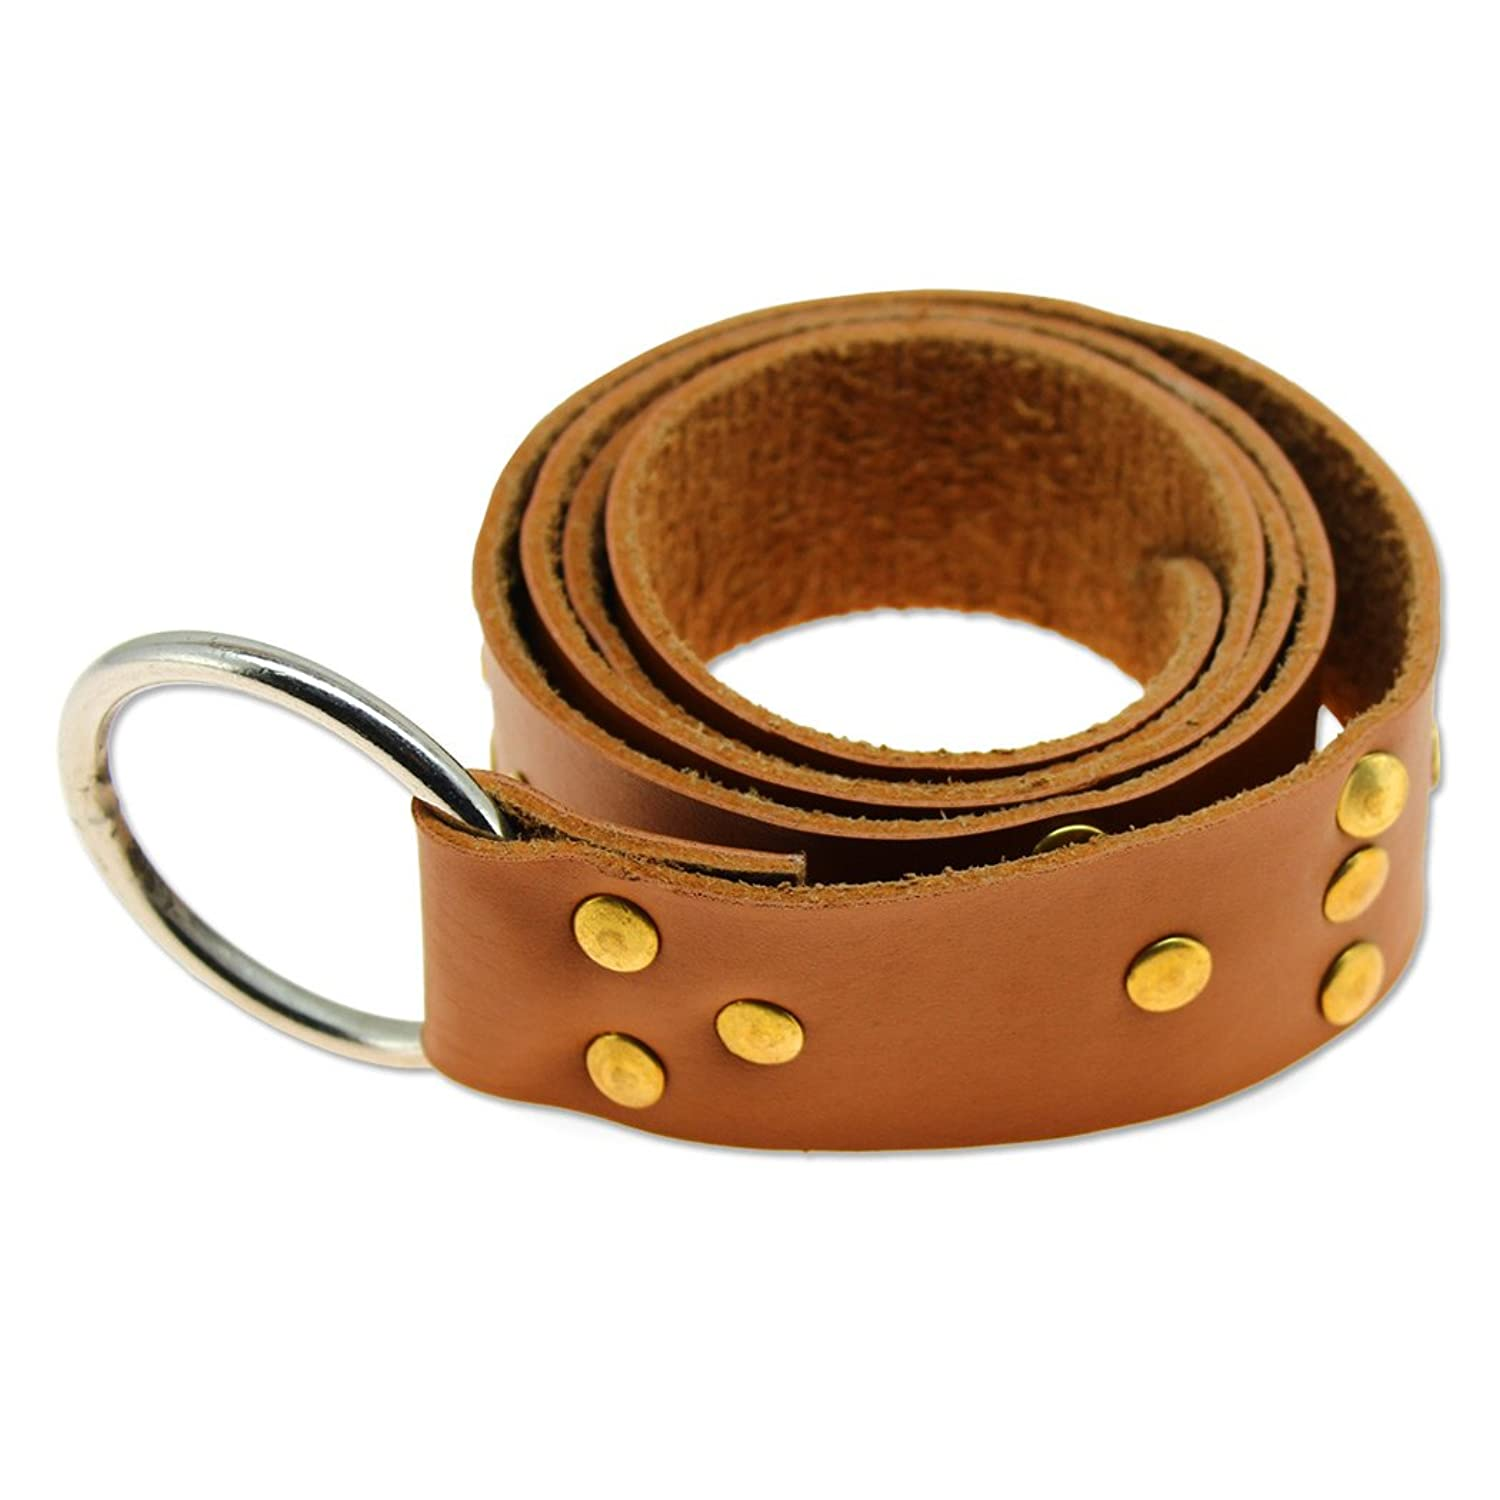 Deluxe Adult Costumes - Tan studded leather templar ring loop belt by Swordsaxe